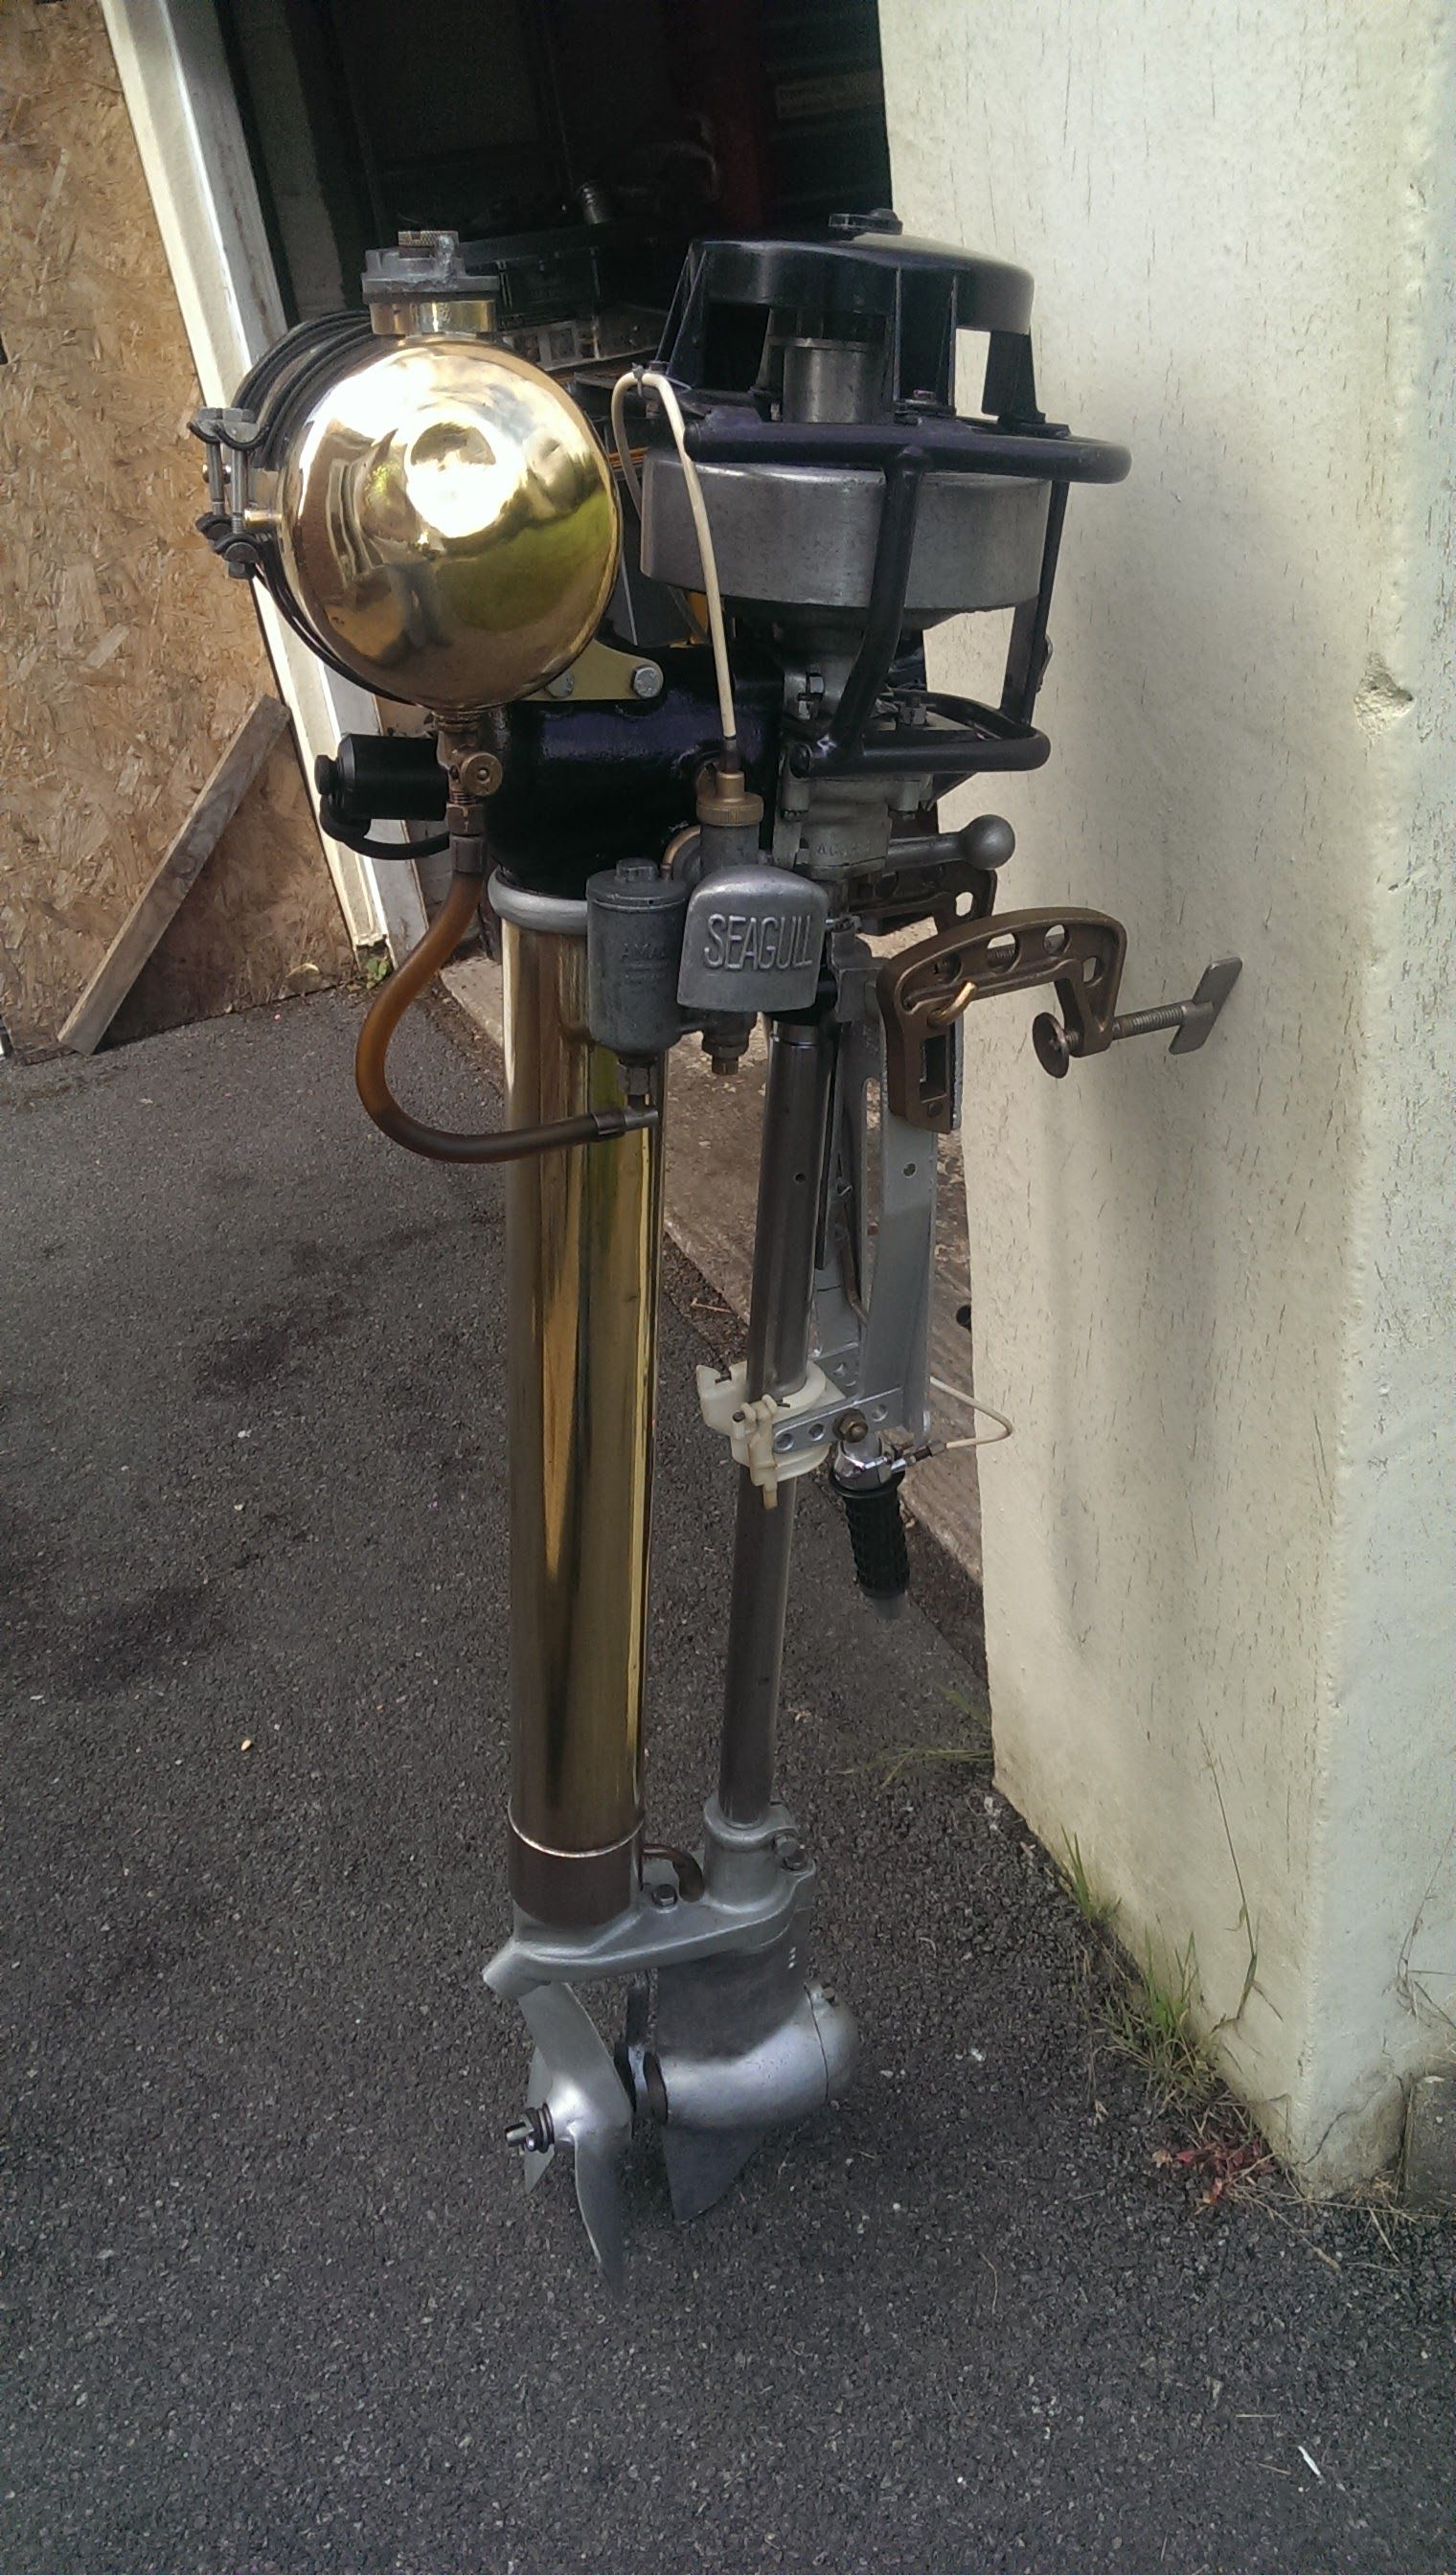 British Seagull Outboard Motor Outboard Motors Outboard Vintage Boats